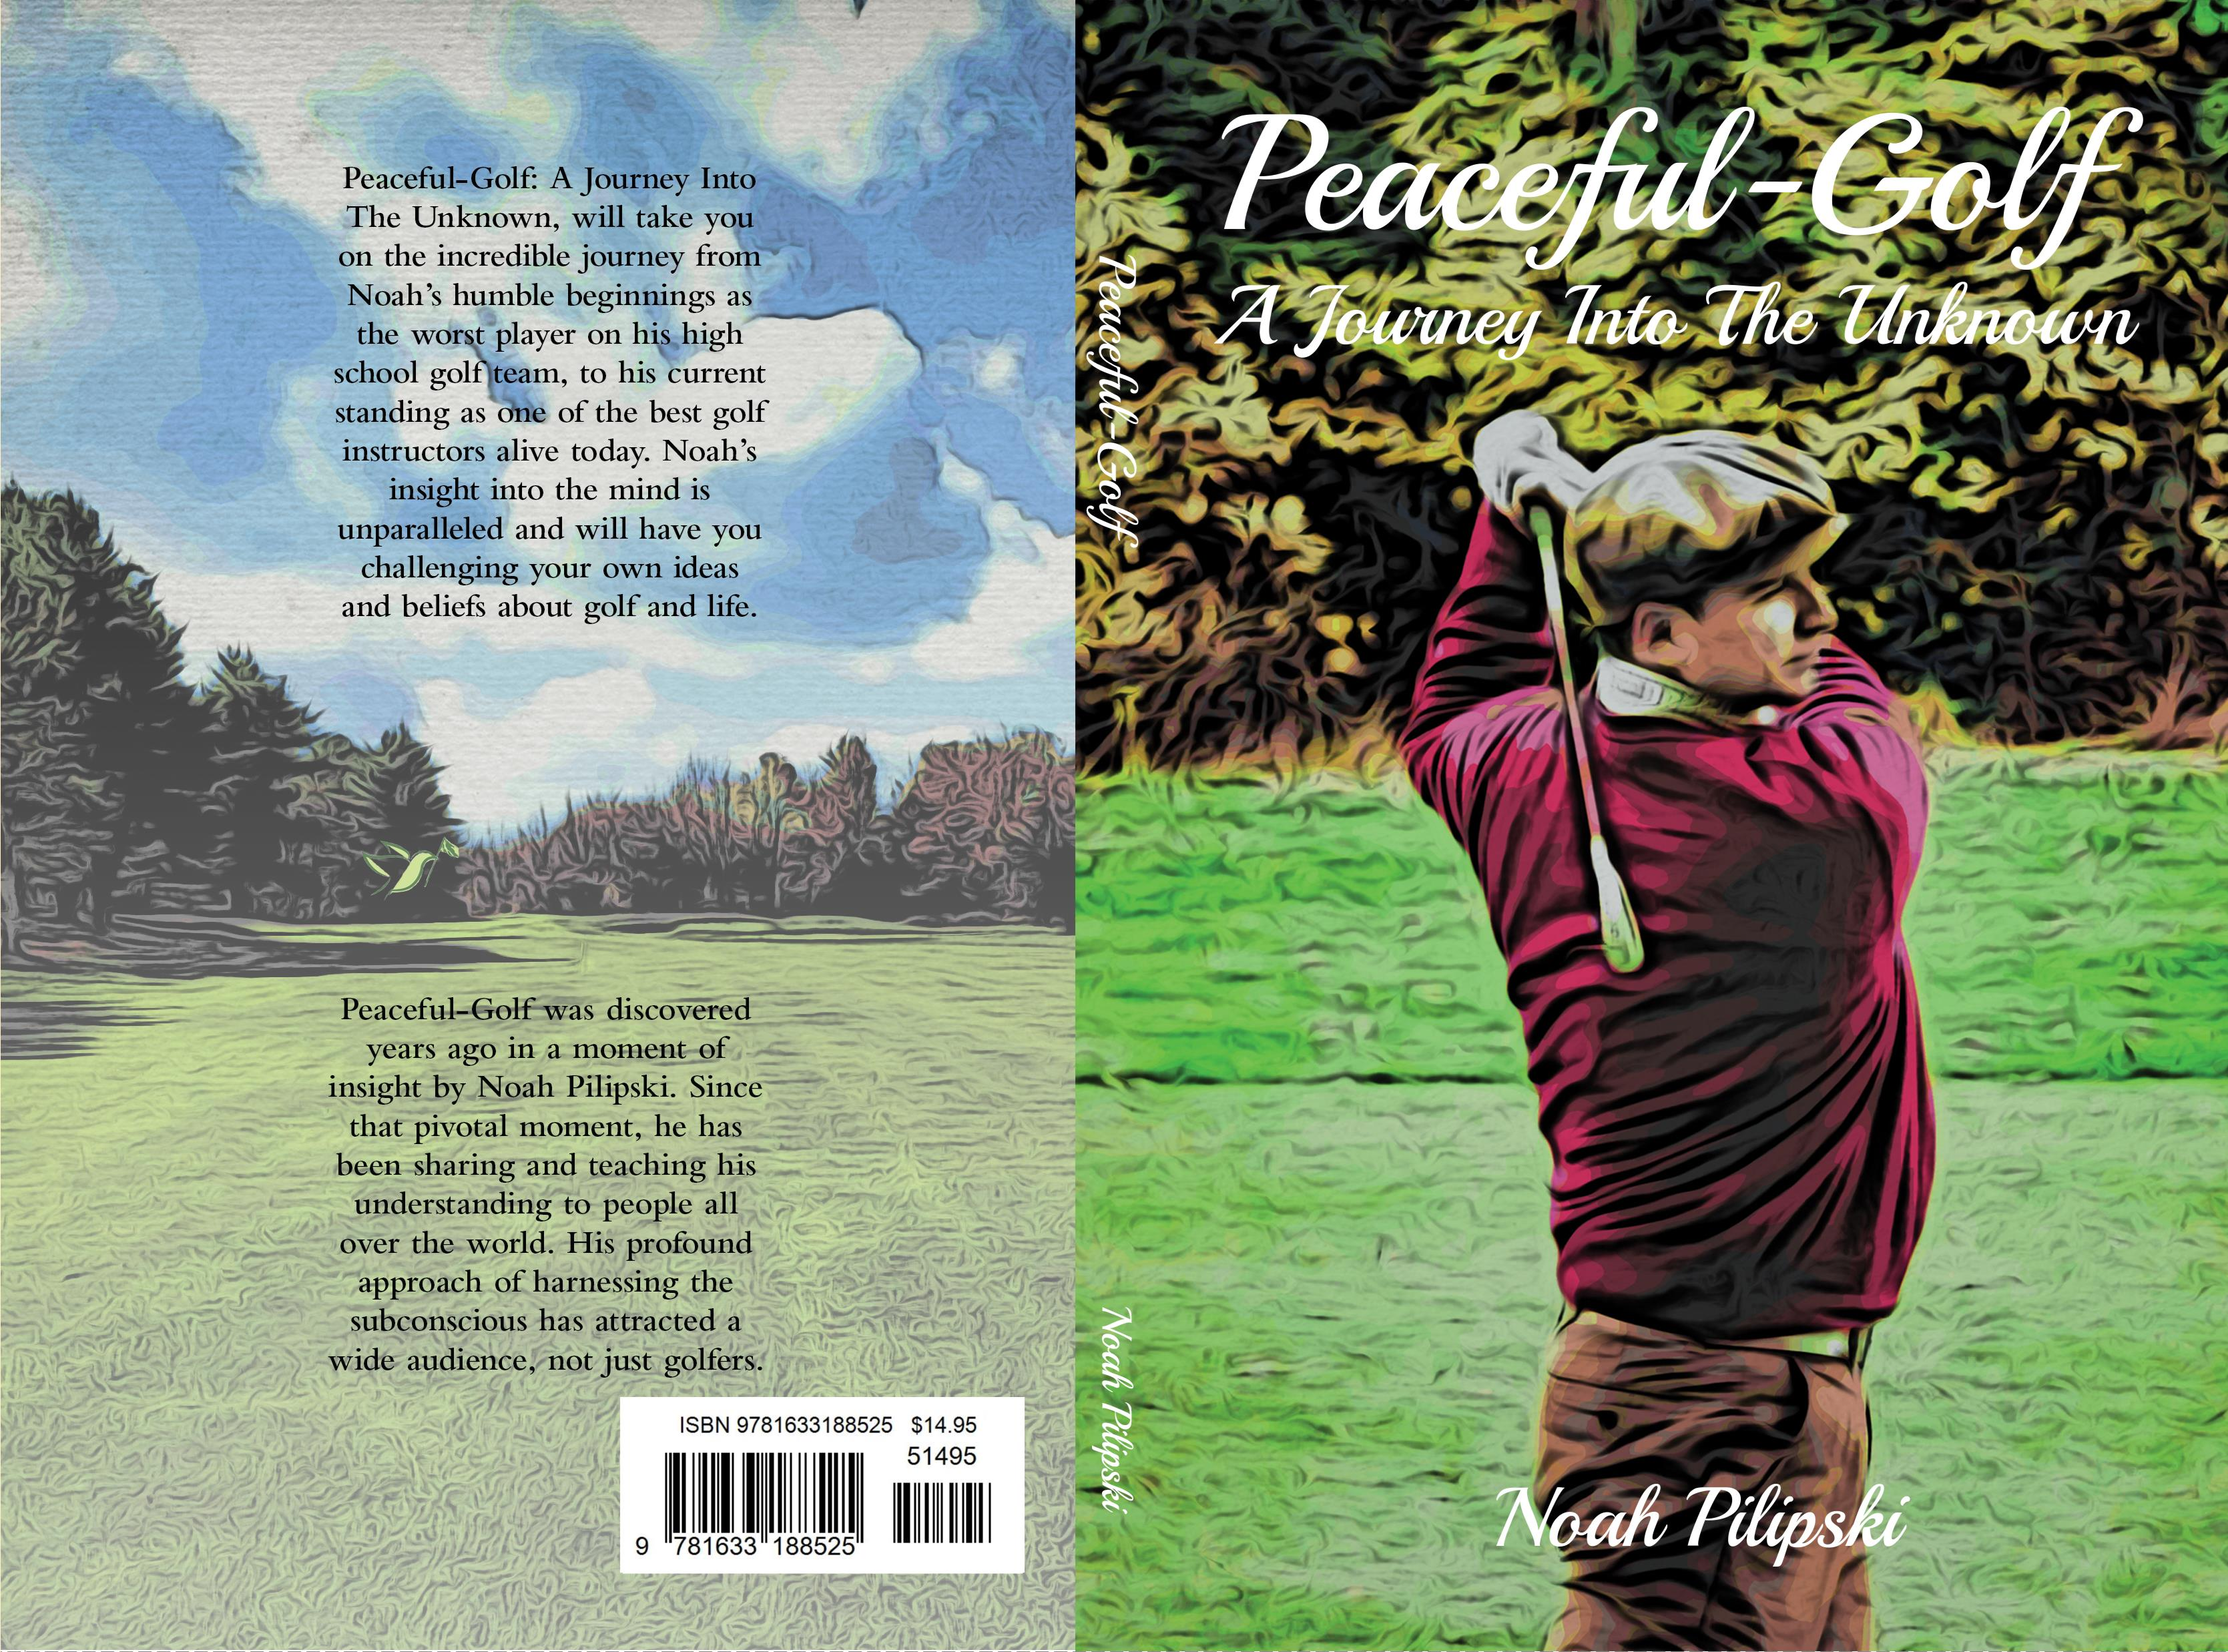 Peaceful Golf, A Journey Into The Unknown cover image